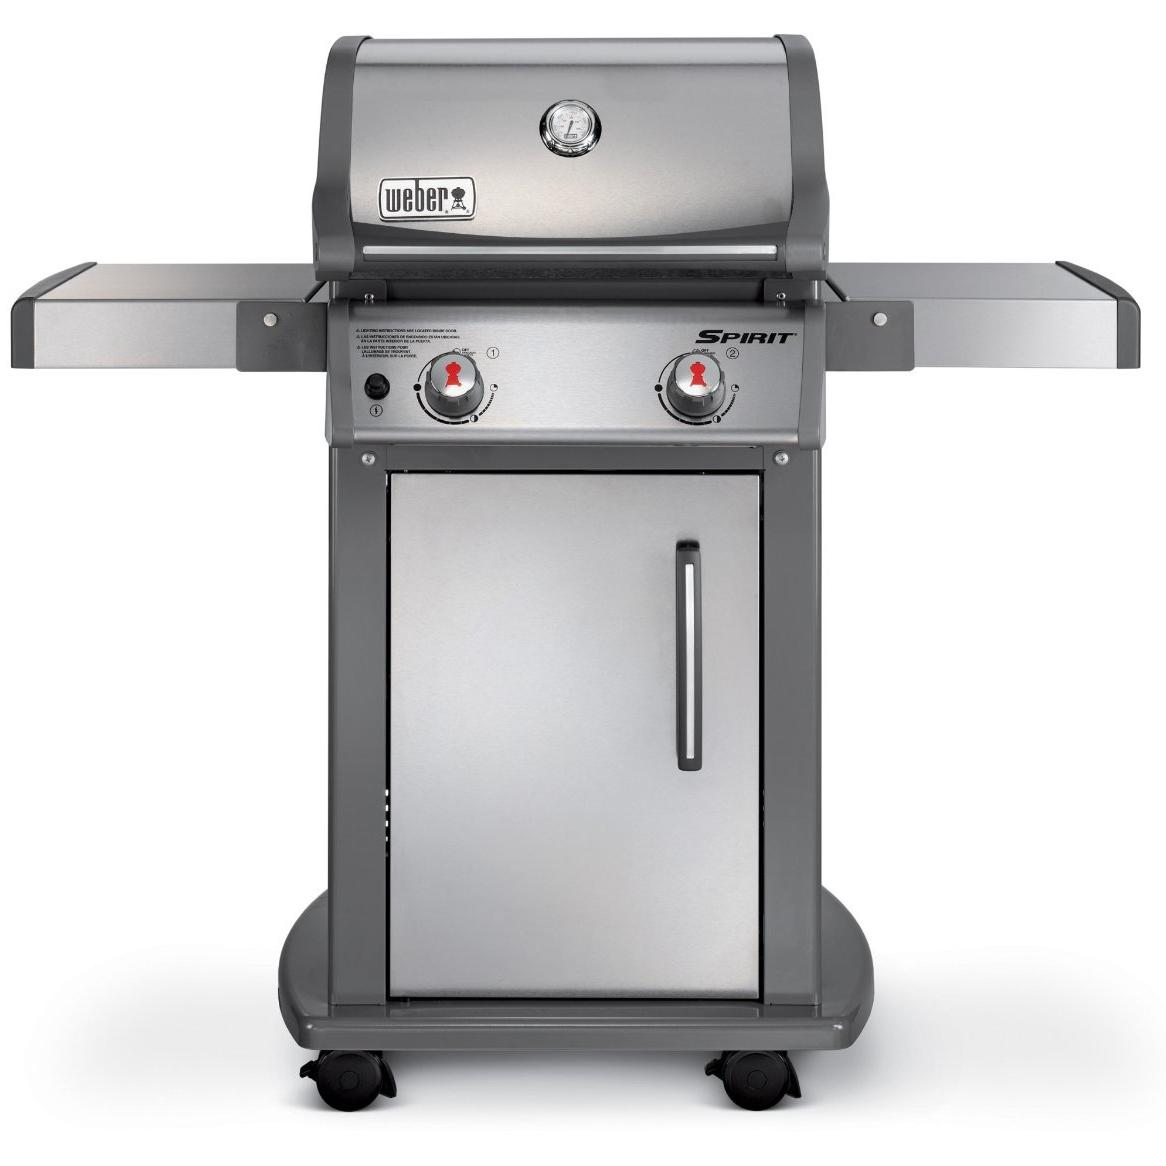 weber spirit s 210 propane gas grill on cart. Black Bedroom Furniture Sets. Home Design Ideas